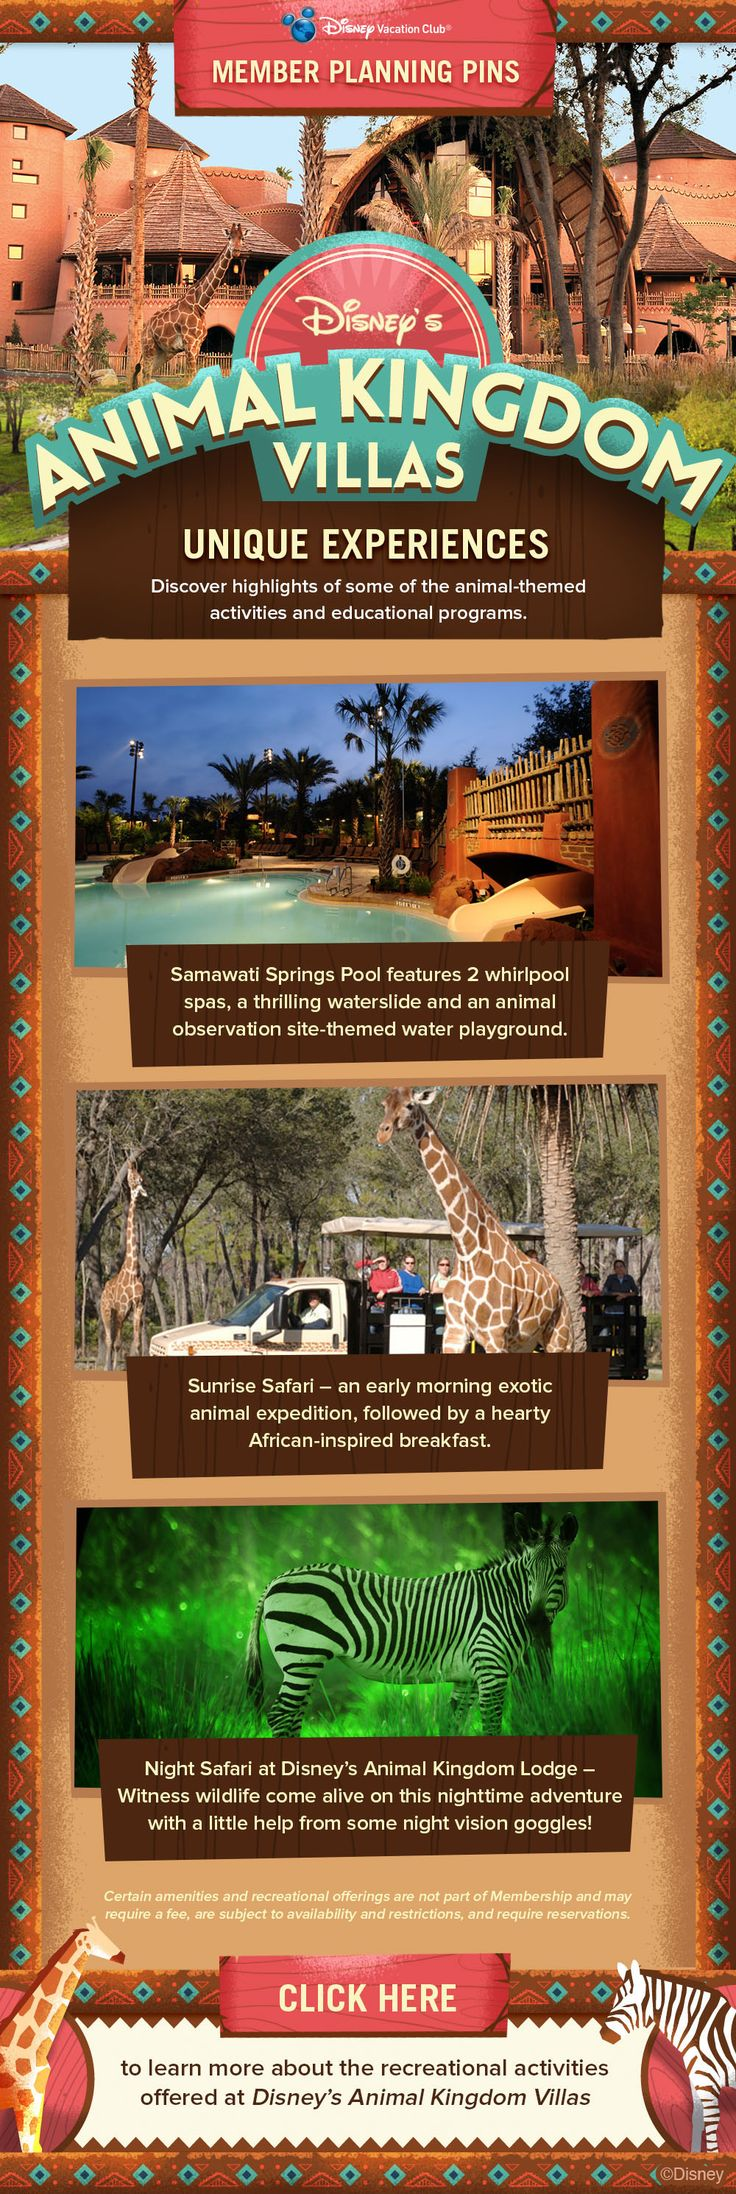 Plan your next Disney Vacation Club vacation to Disney's Animal Kingdom Villas with our helpful Member Planning Pin showing what unique experiences are available at the Resort. Did you know the Resort offers a Sunrise Safari and a Night Safari to Guests? Or perhaps swimming in one of the feature pools is your kind of vacation. Click to learn more!